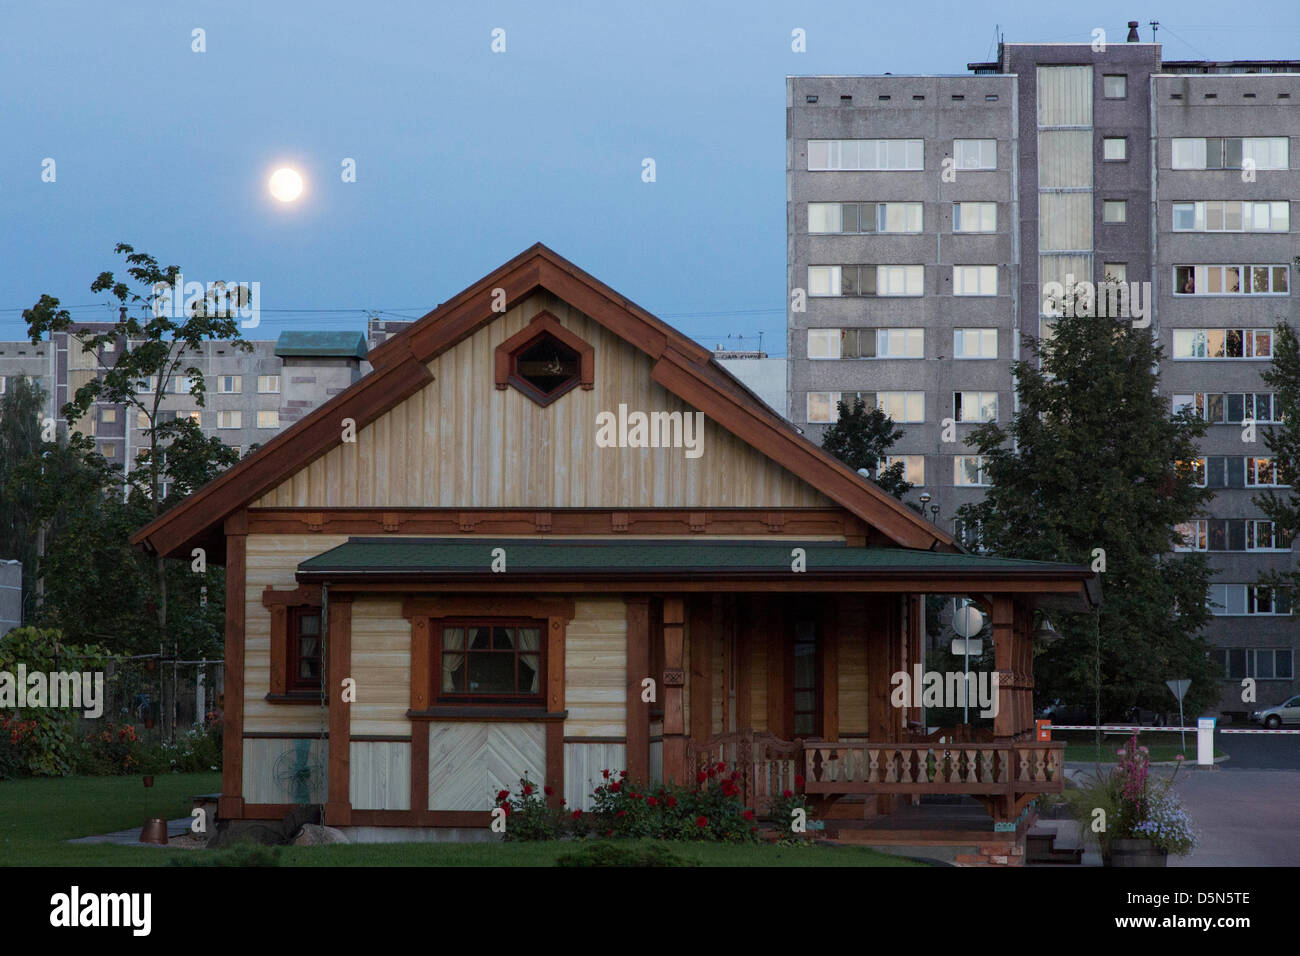 precast concrete blocks from soviet times in a suburb of Riga at moonlight behind a modern prefab - Stock Image